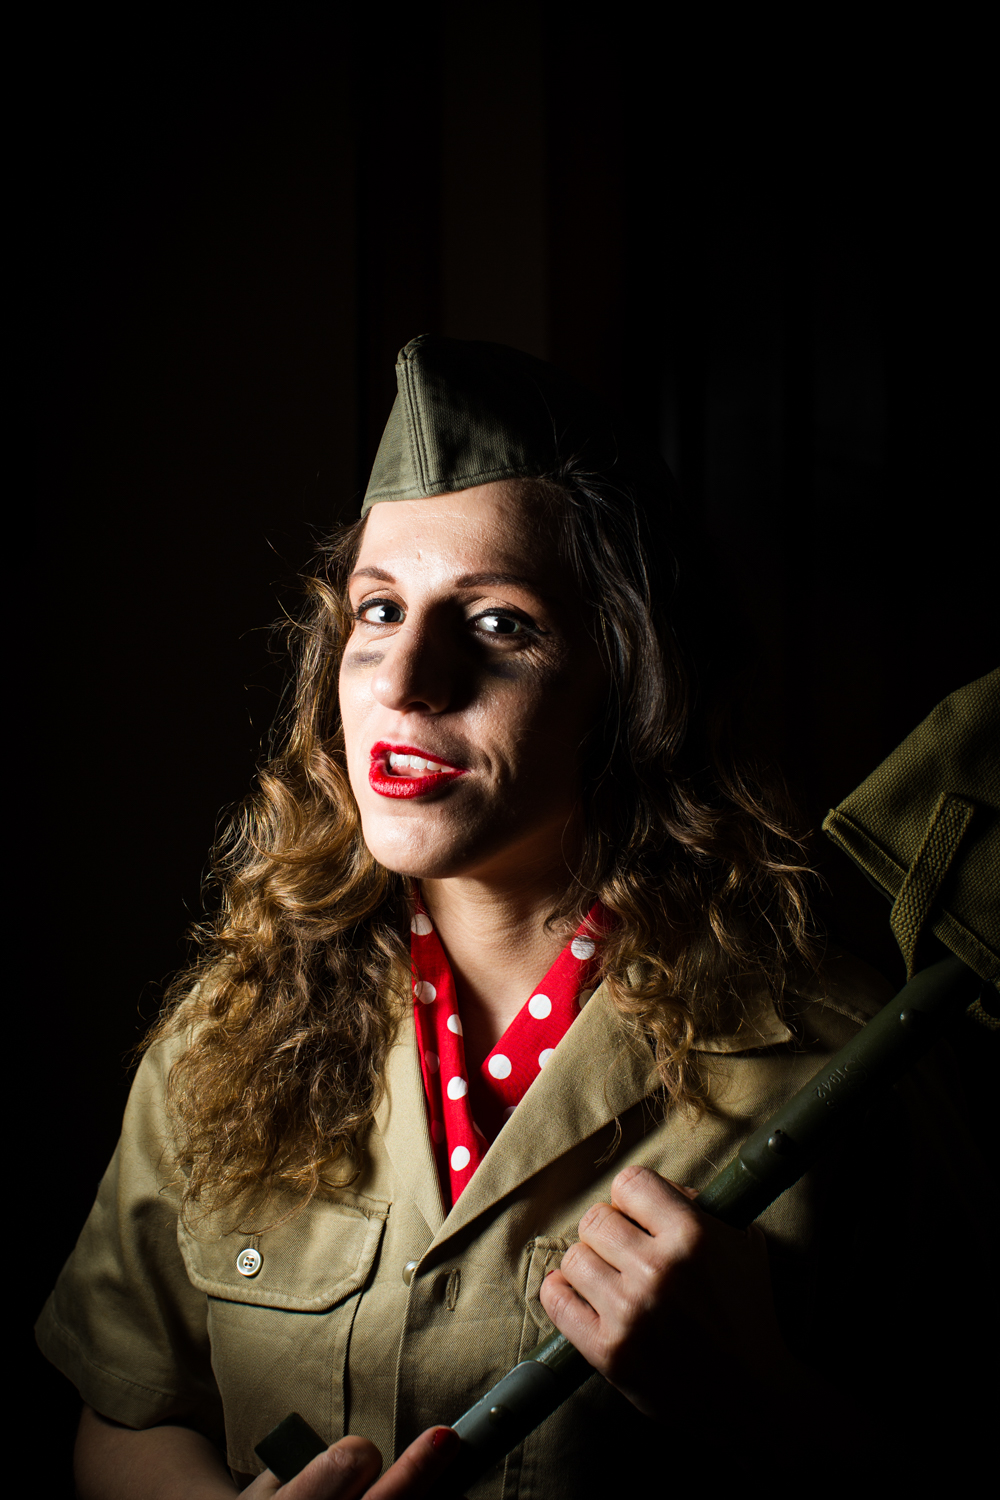 Cherry Bombers headshot shoot-45.jpg